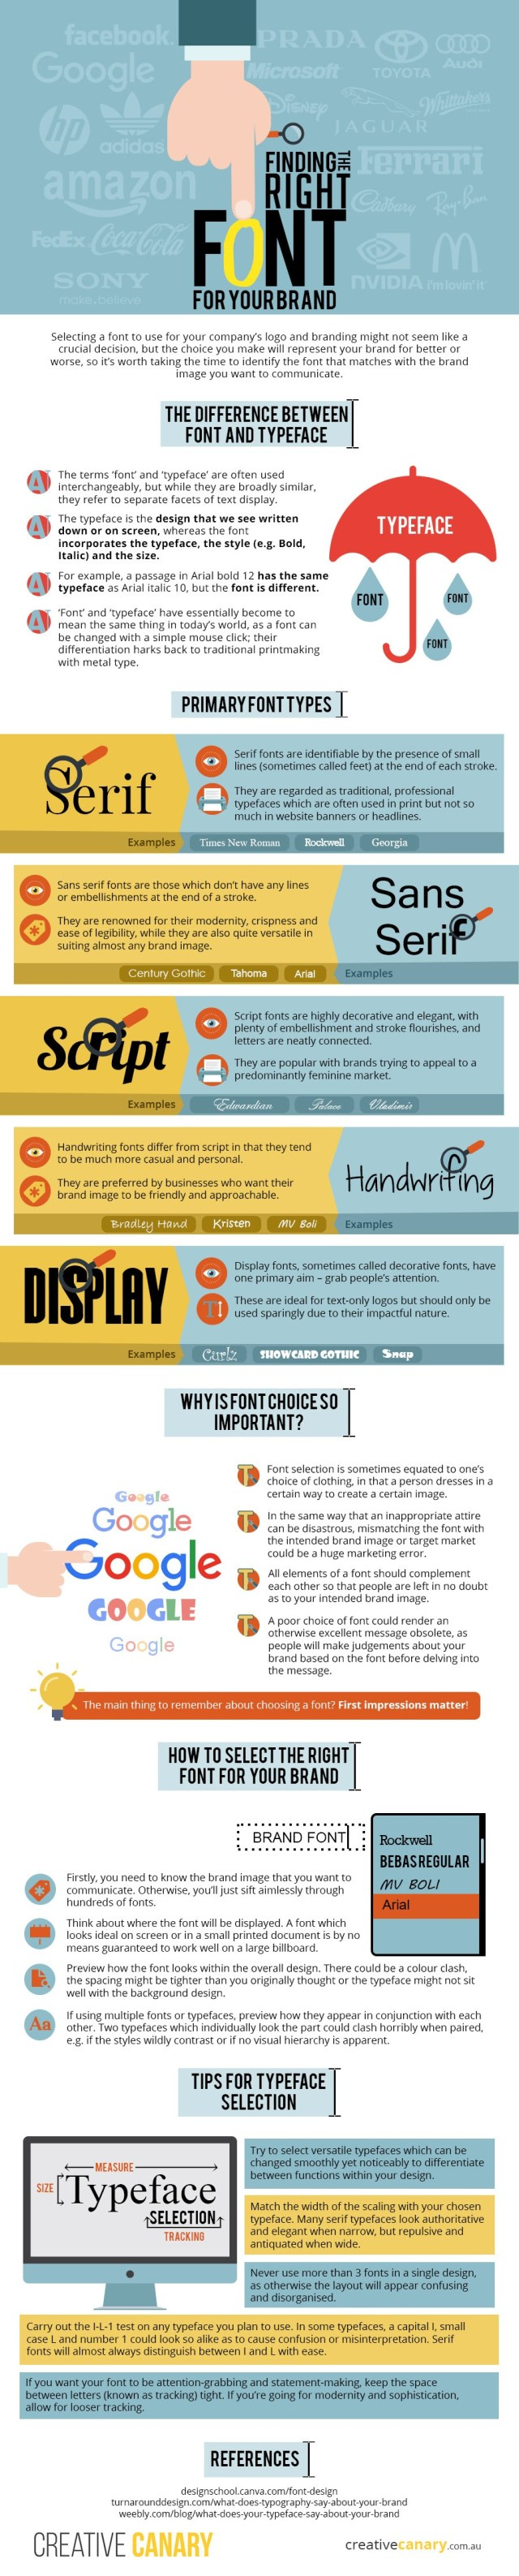 Finding the Right Font for Your Brand